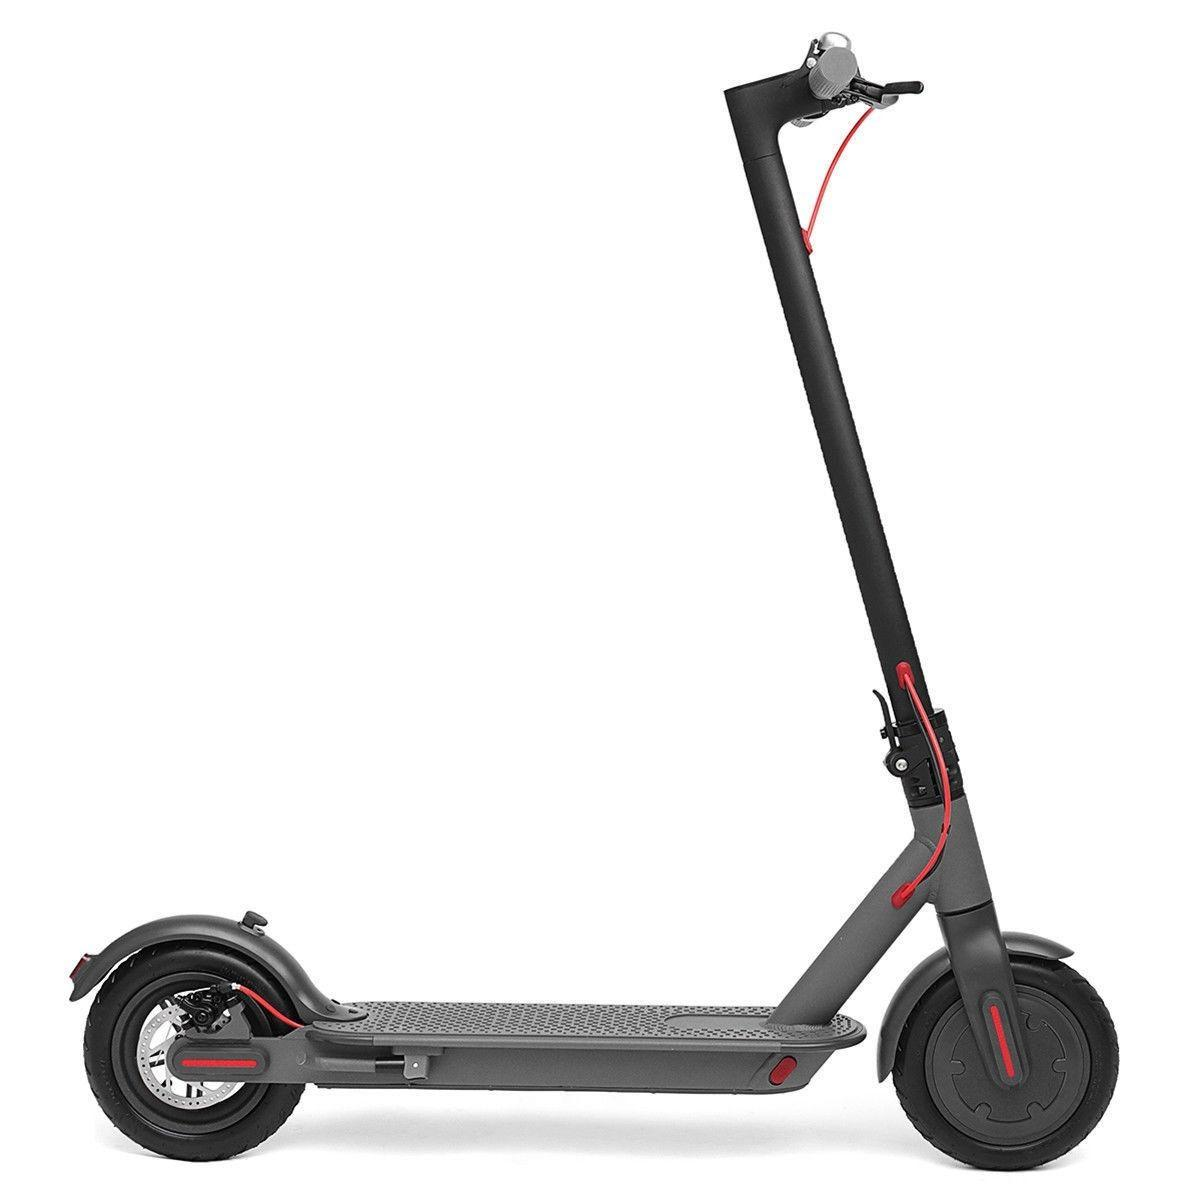 NEW Scooter Generic M365 Seller Bird Lime LG